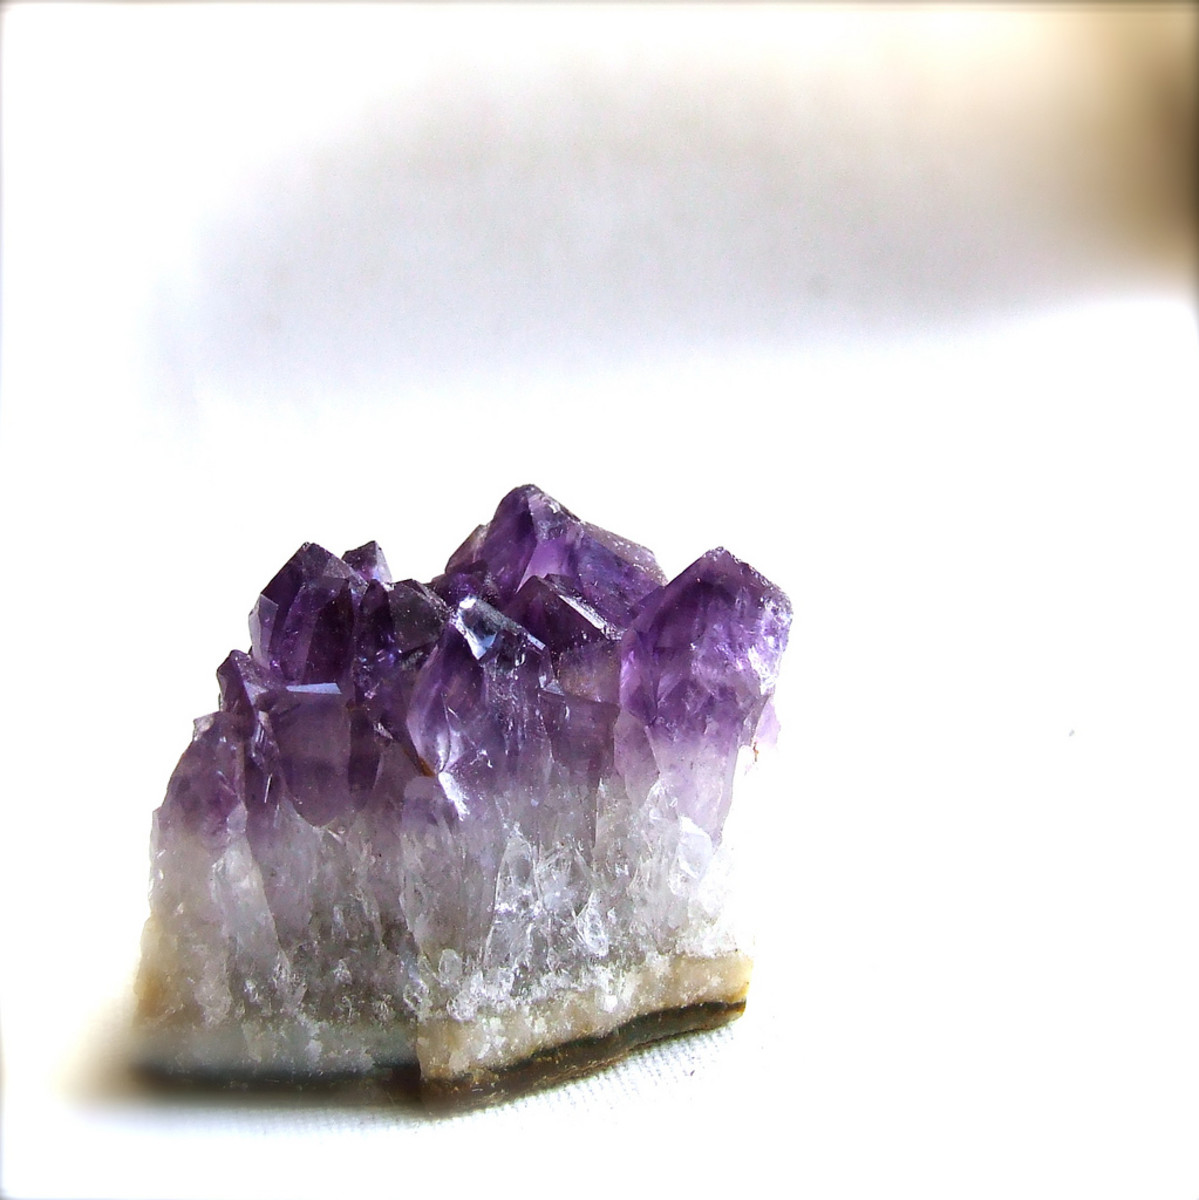 Raw and polished crystals can be used in healing.